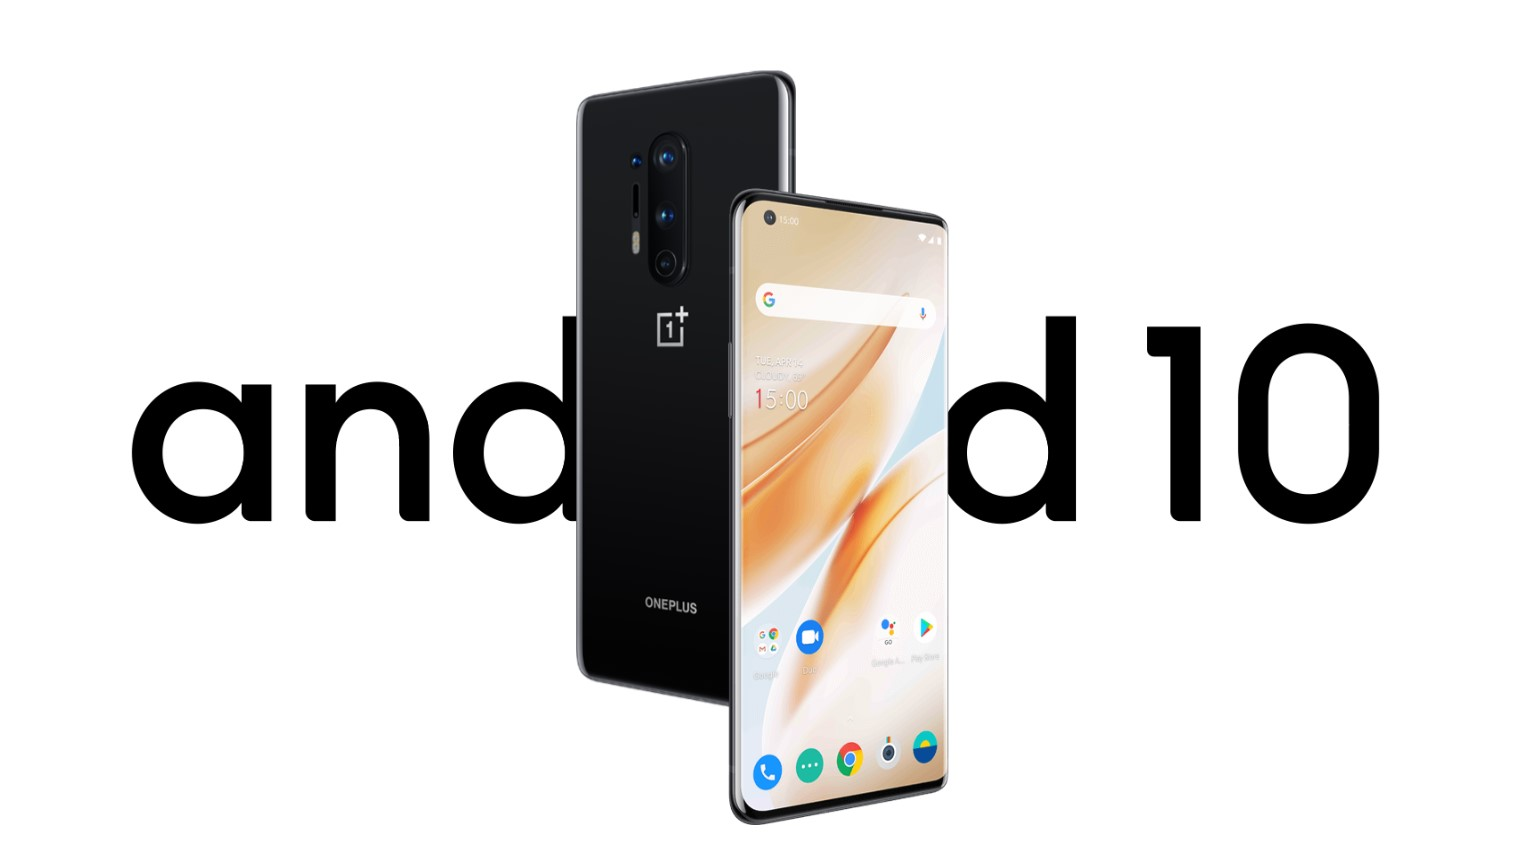 OnePlus OxygenOS 10 Android 10